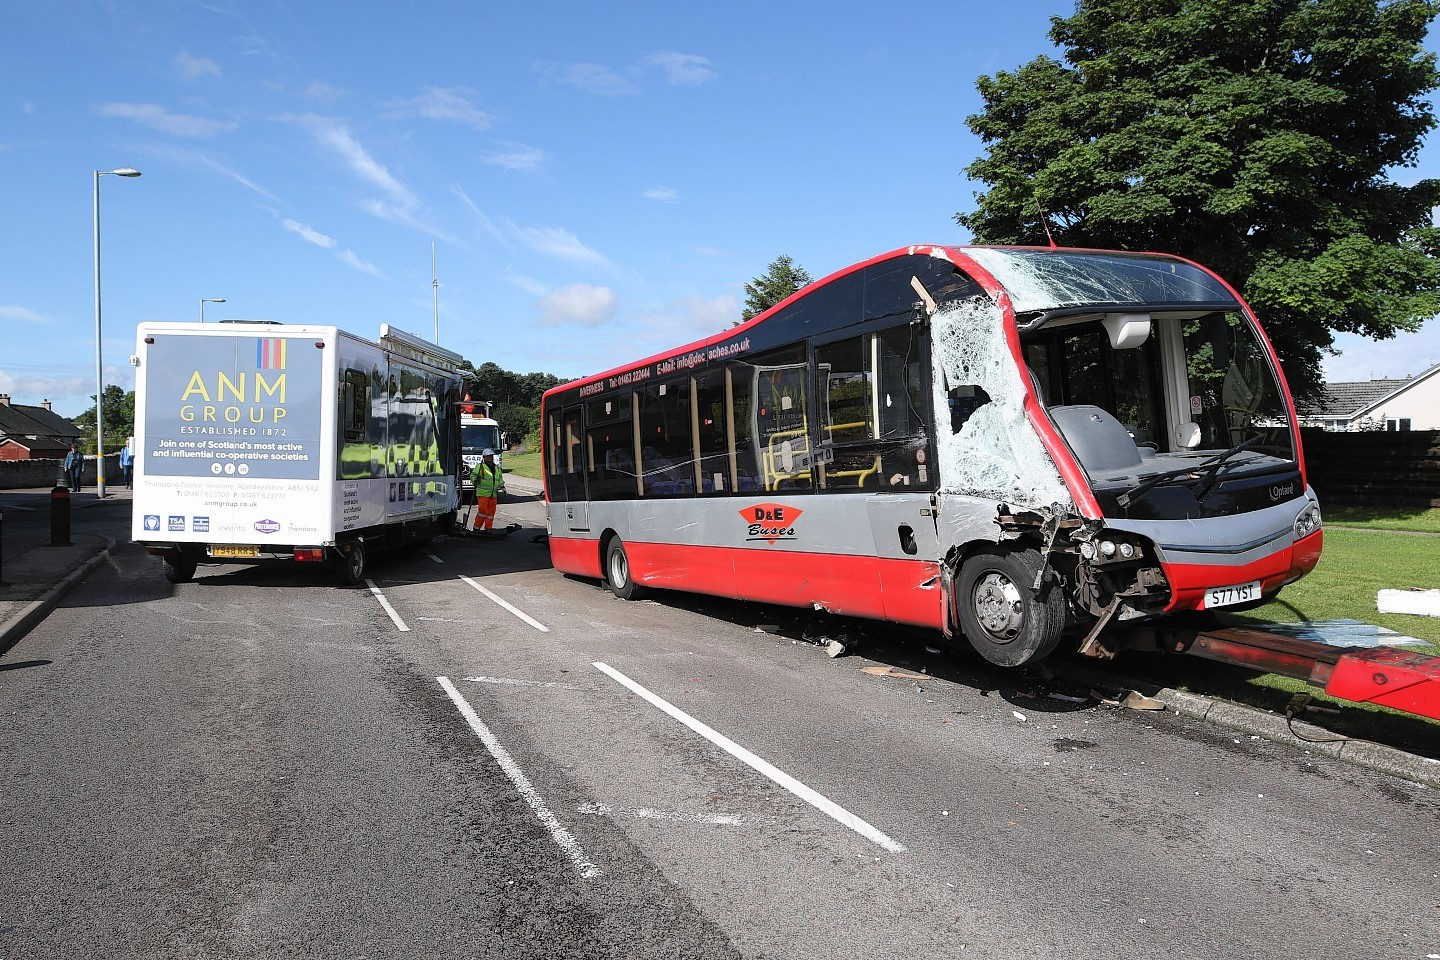 2 August 2017: Scene of an RTC involving a bus and an exhibition trailer on the A96 at the Gulf petrol station in Nairn. It is understood that the trailer was being towed west to the Black Isle Show when it became detached from the lorry that was towing it, and collided with a bus heading east. The lorry that had been towing the trailer was taken away from the scene, where it was inspected by police and representatives from the Driver & Vehicle Standards Agency. A towing hitch could be seen on the grass verge close to the scene of the collision. The road was closed in both directions with diversions in place, with some local traffic allowed to pass the scene via the petrol station forecourt. Picture: Andrew Smith